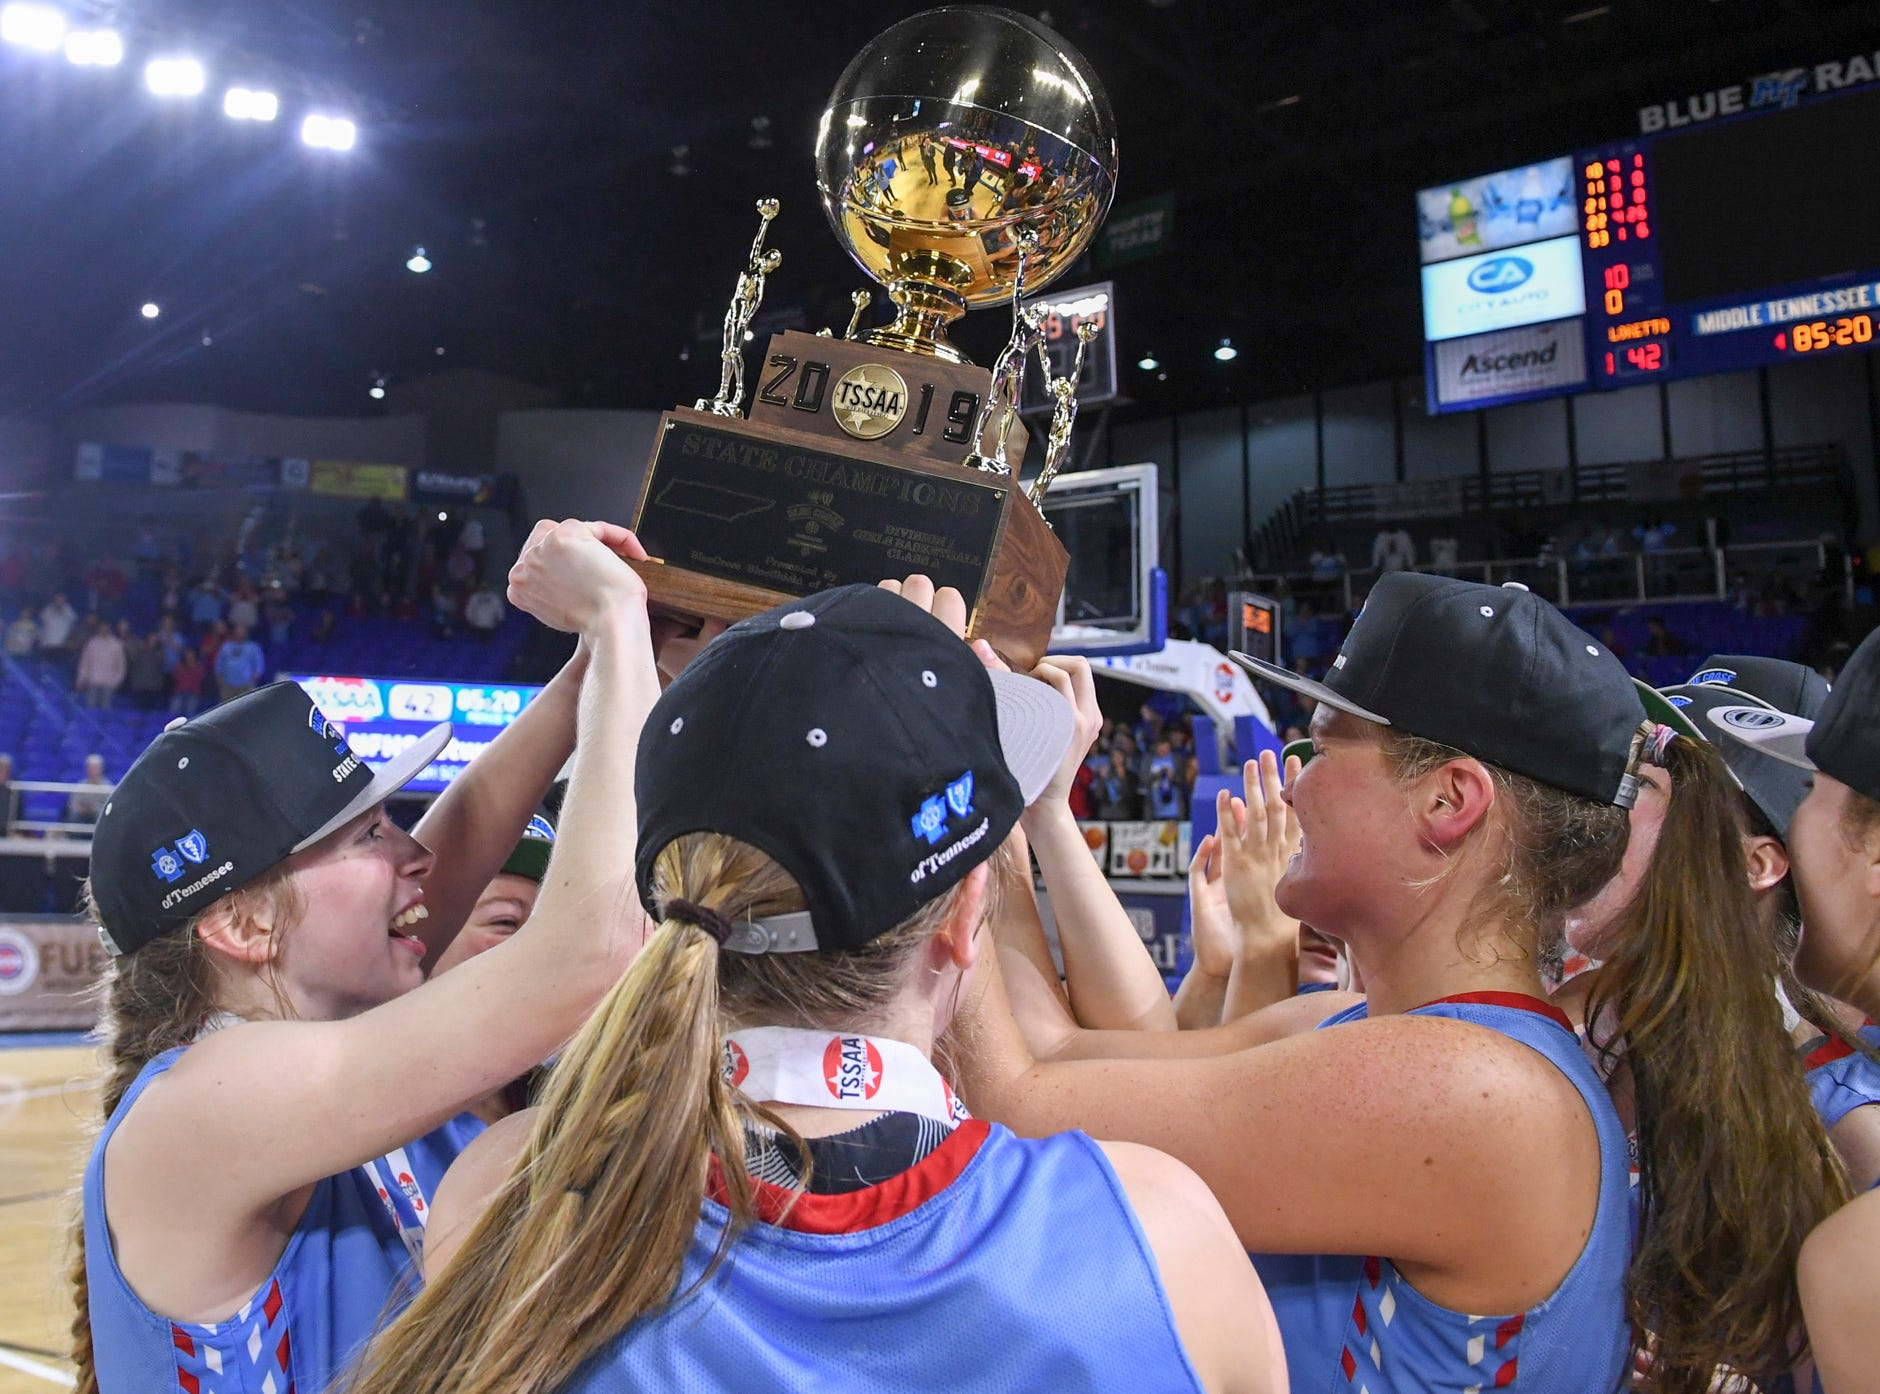 The Lady Pioneers of Gibson County High School hold up their championship trophy at the end of their Class A championship game, Saturday, March 9, 2019, in Murfreesboro. Gibson County defeated Loretto, 50-42 to become the 2019 Class A Champions.